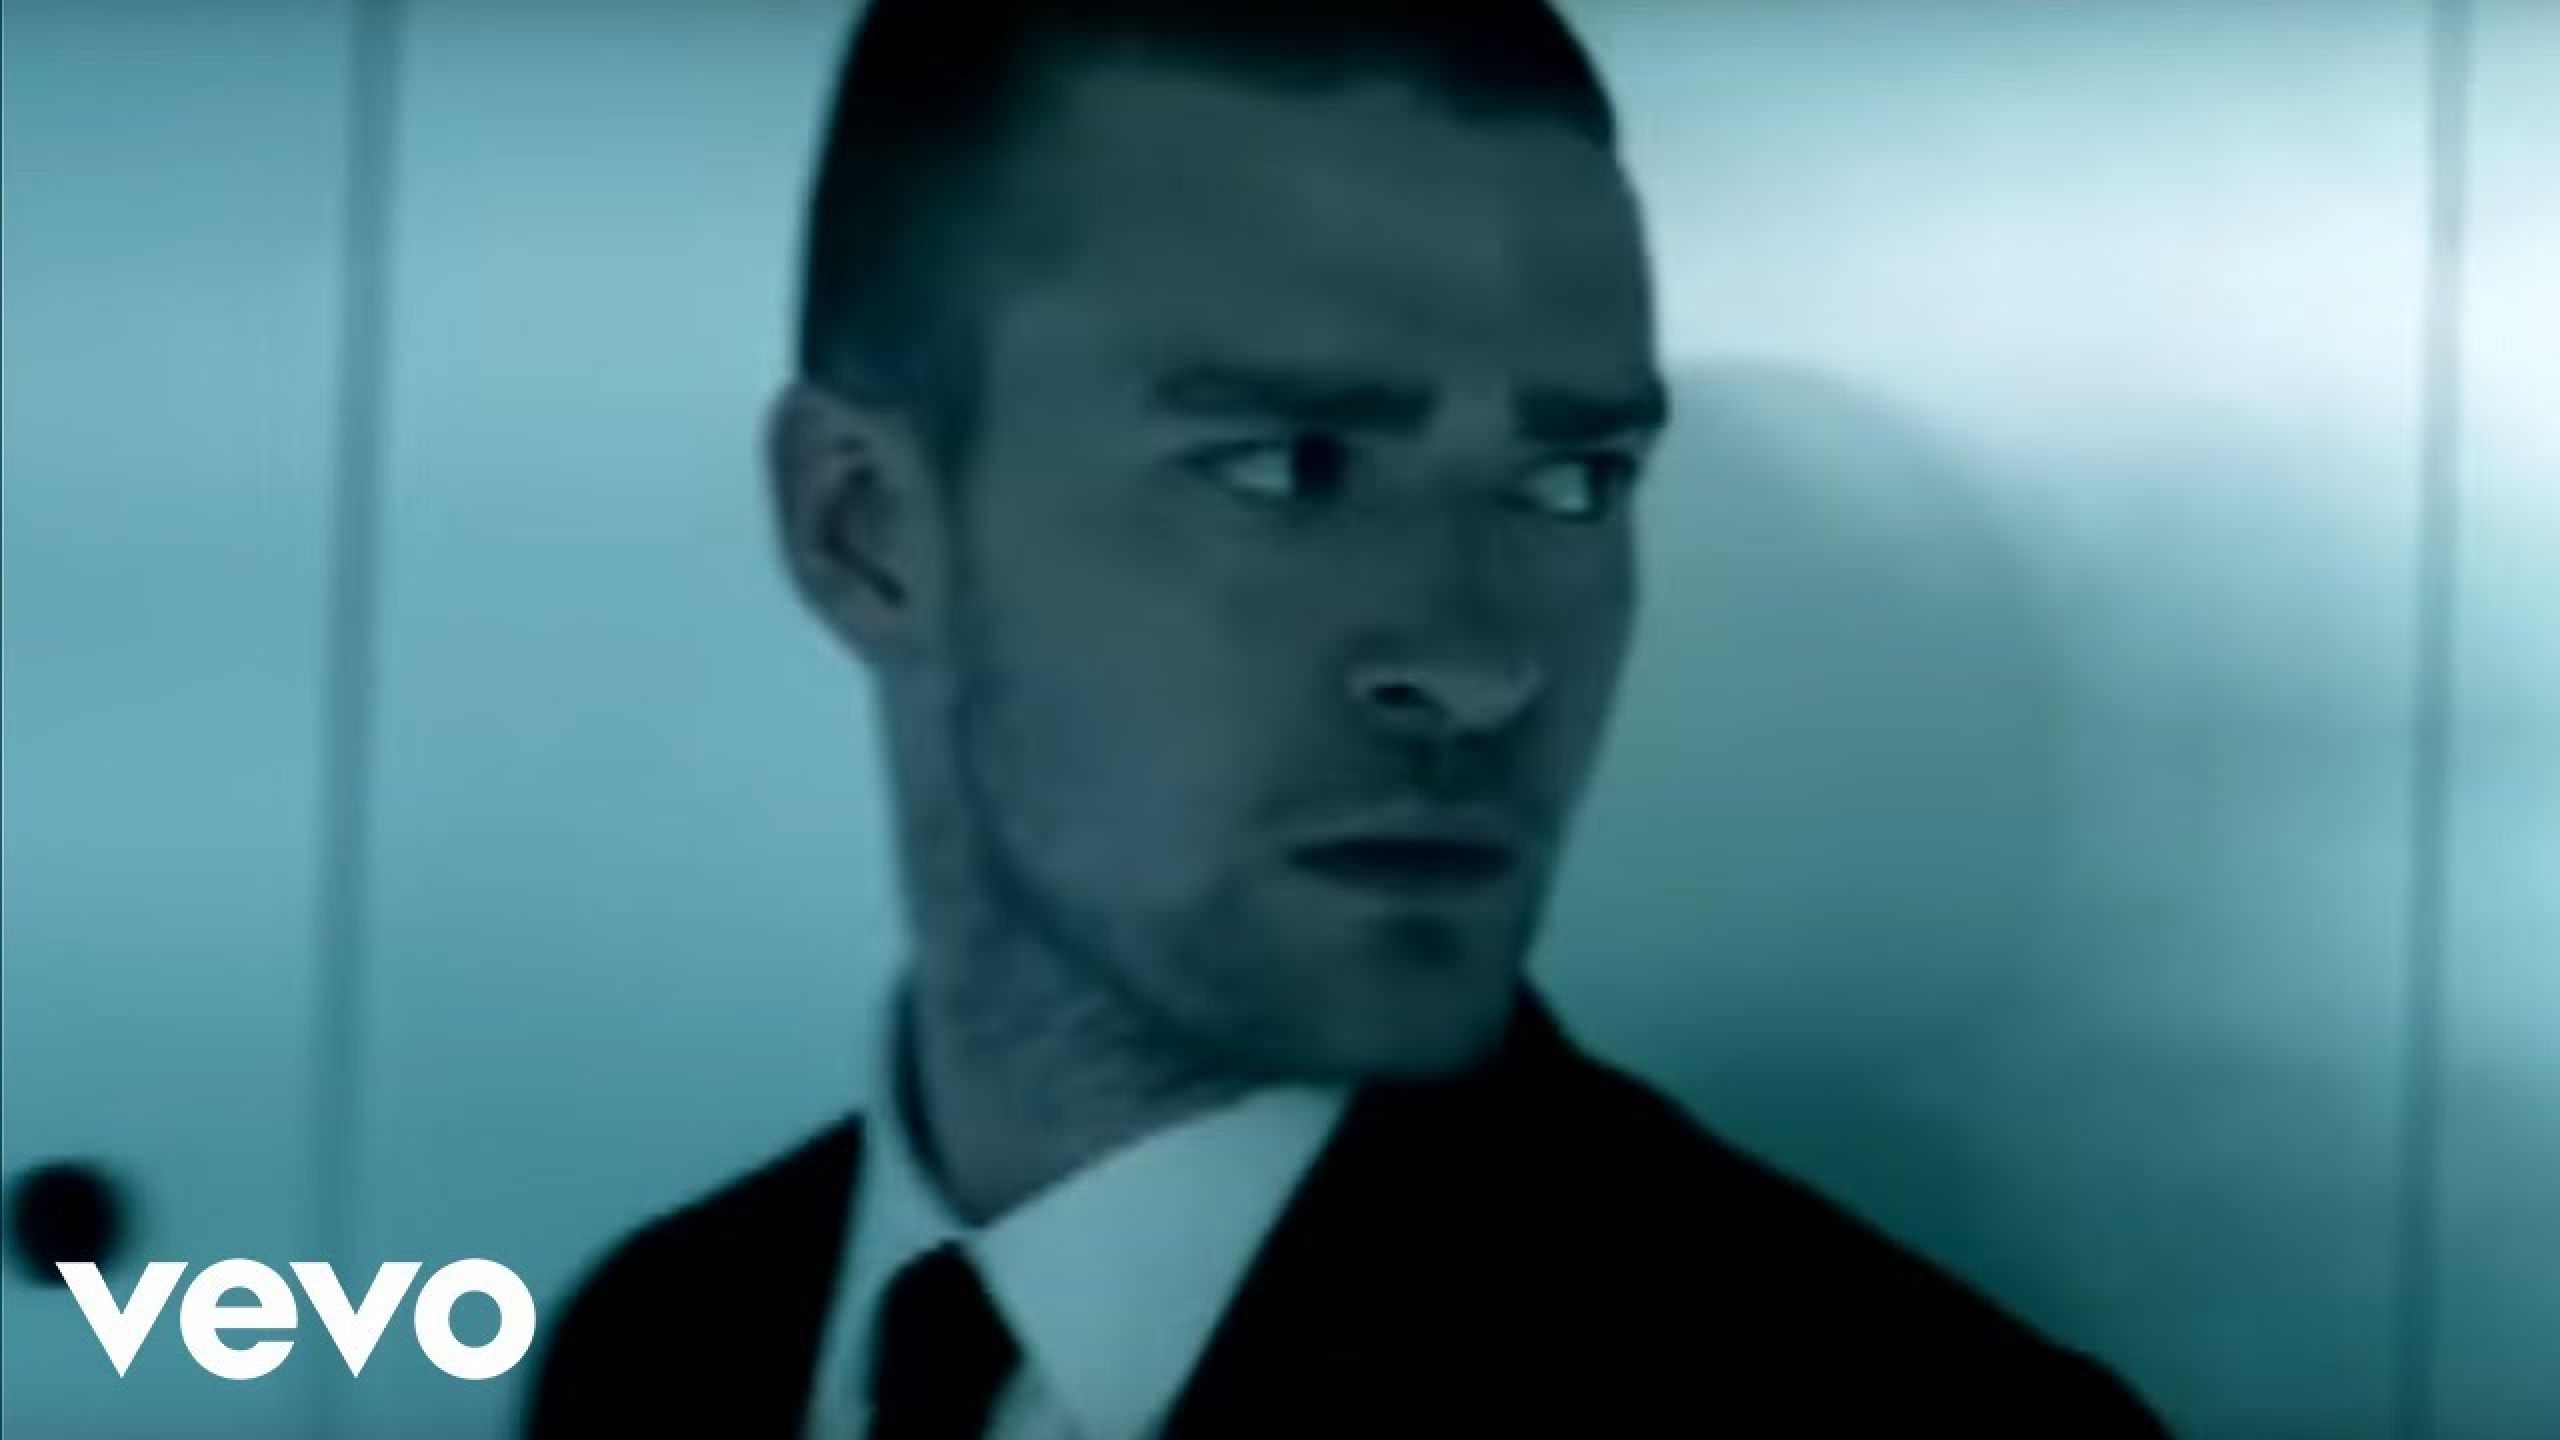 Justin Timberlake's Fight To Bring Sexy Back